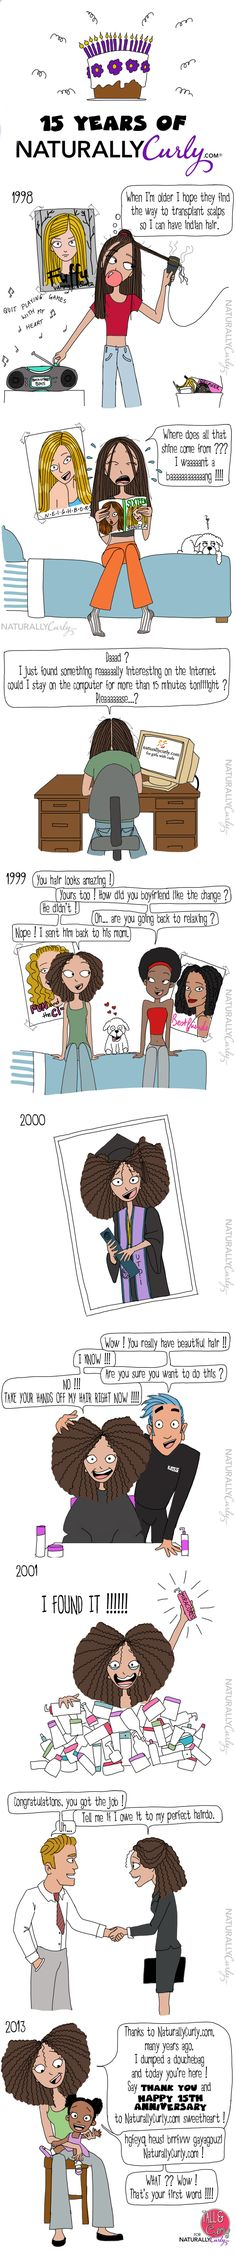 15 Years of NaturallyCurly | COMIC  Thanks @Terry Martinez N Curly for illustrating how NaturallyCurly.com has grown over the years! So grateful to be part of so many curlies' lives. Tell a friend, tell your kiddos -- rock those curls, coils, and waves proudly!